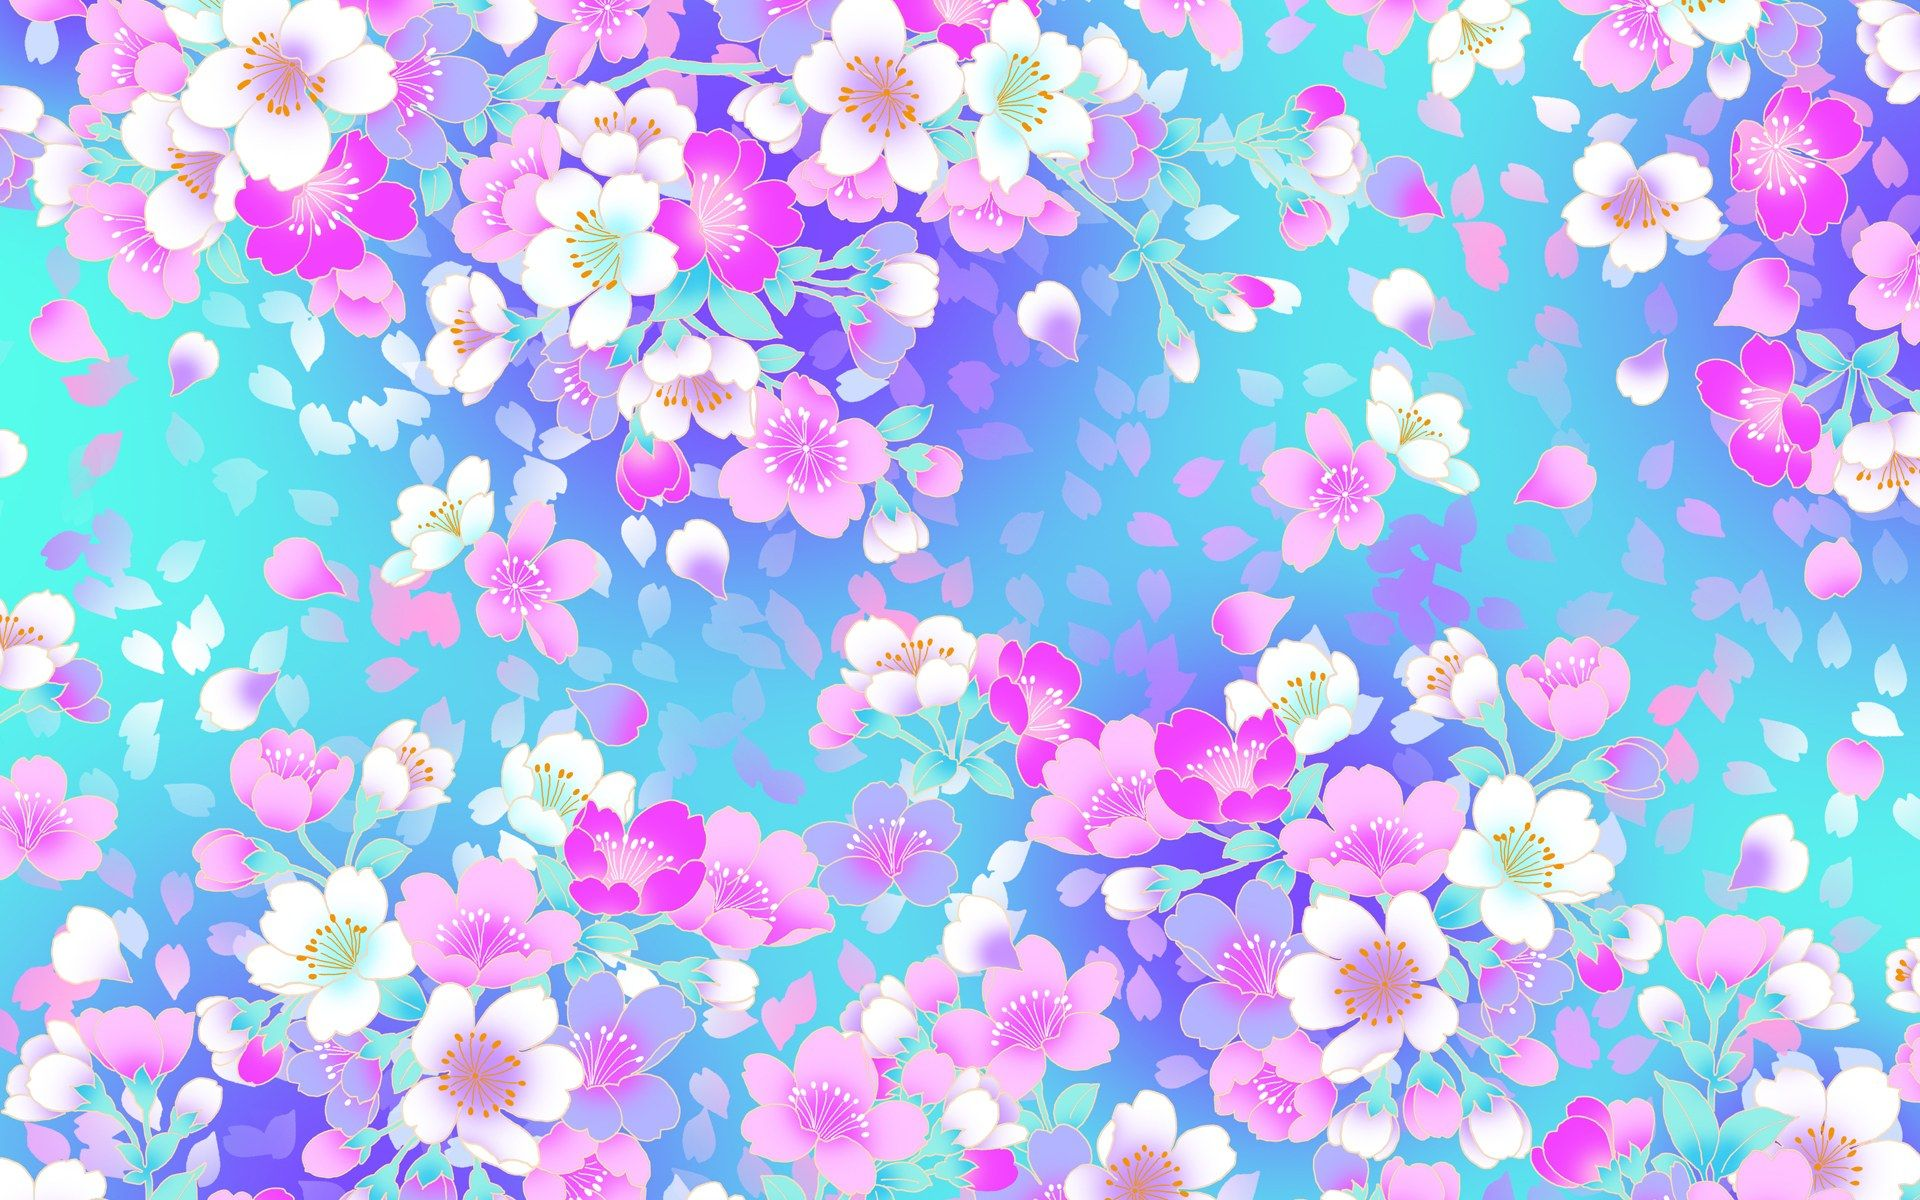 floral wallpapers find best latest floral wallpapers in hd for your pc desktop background